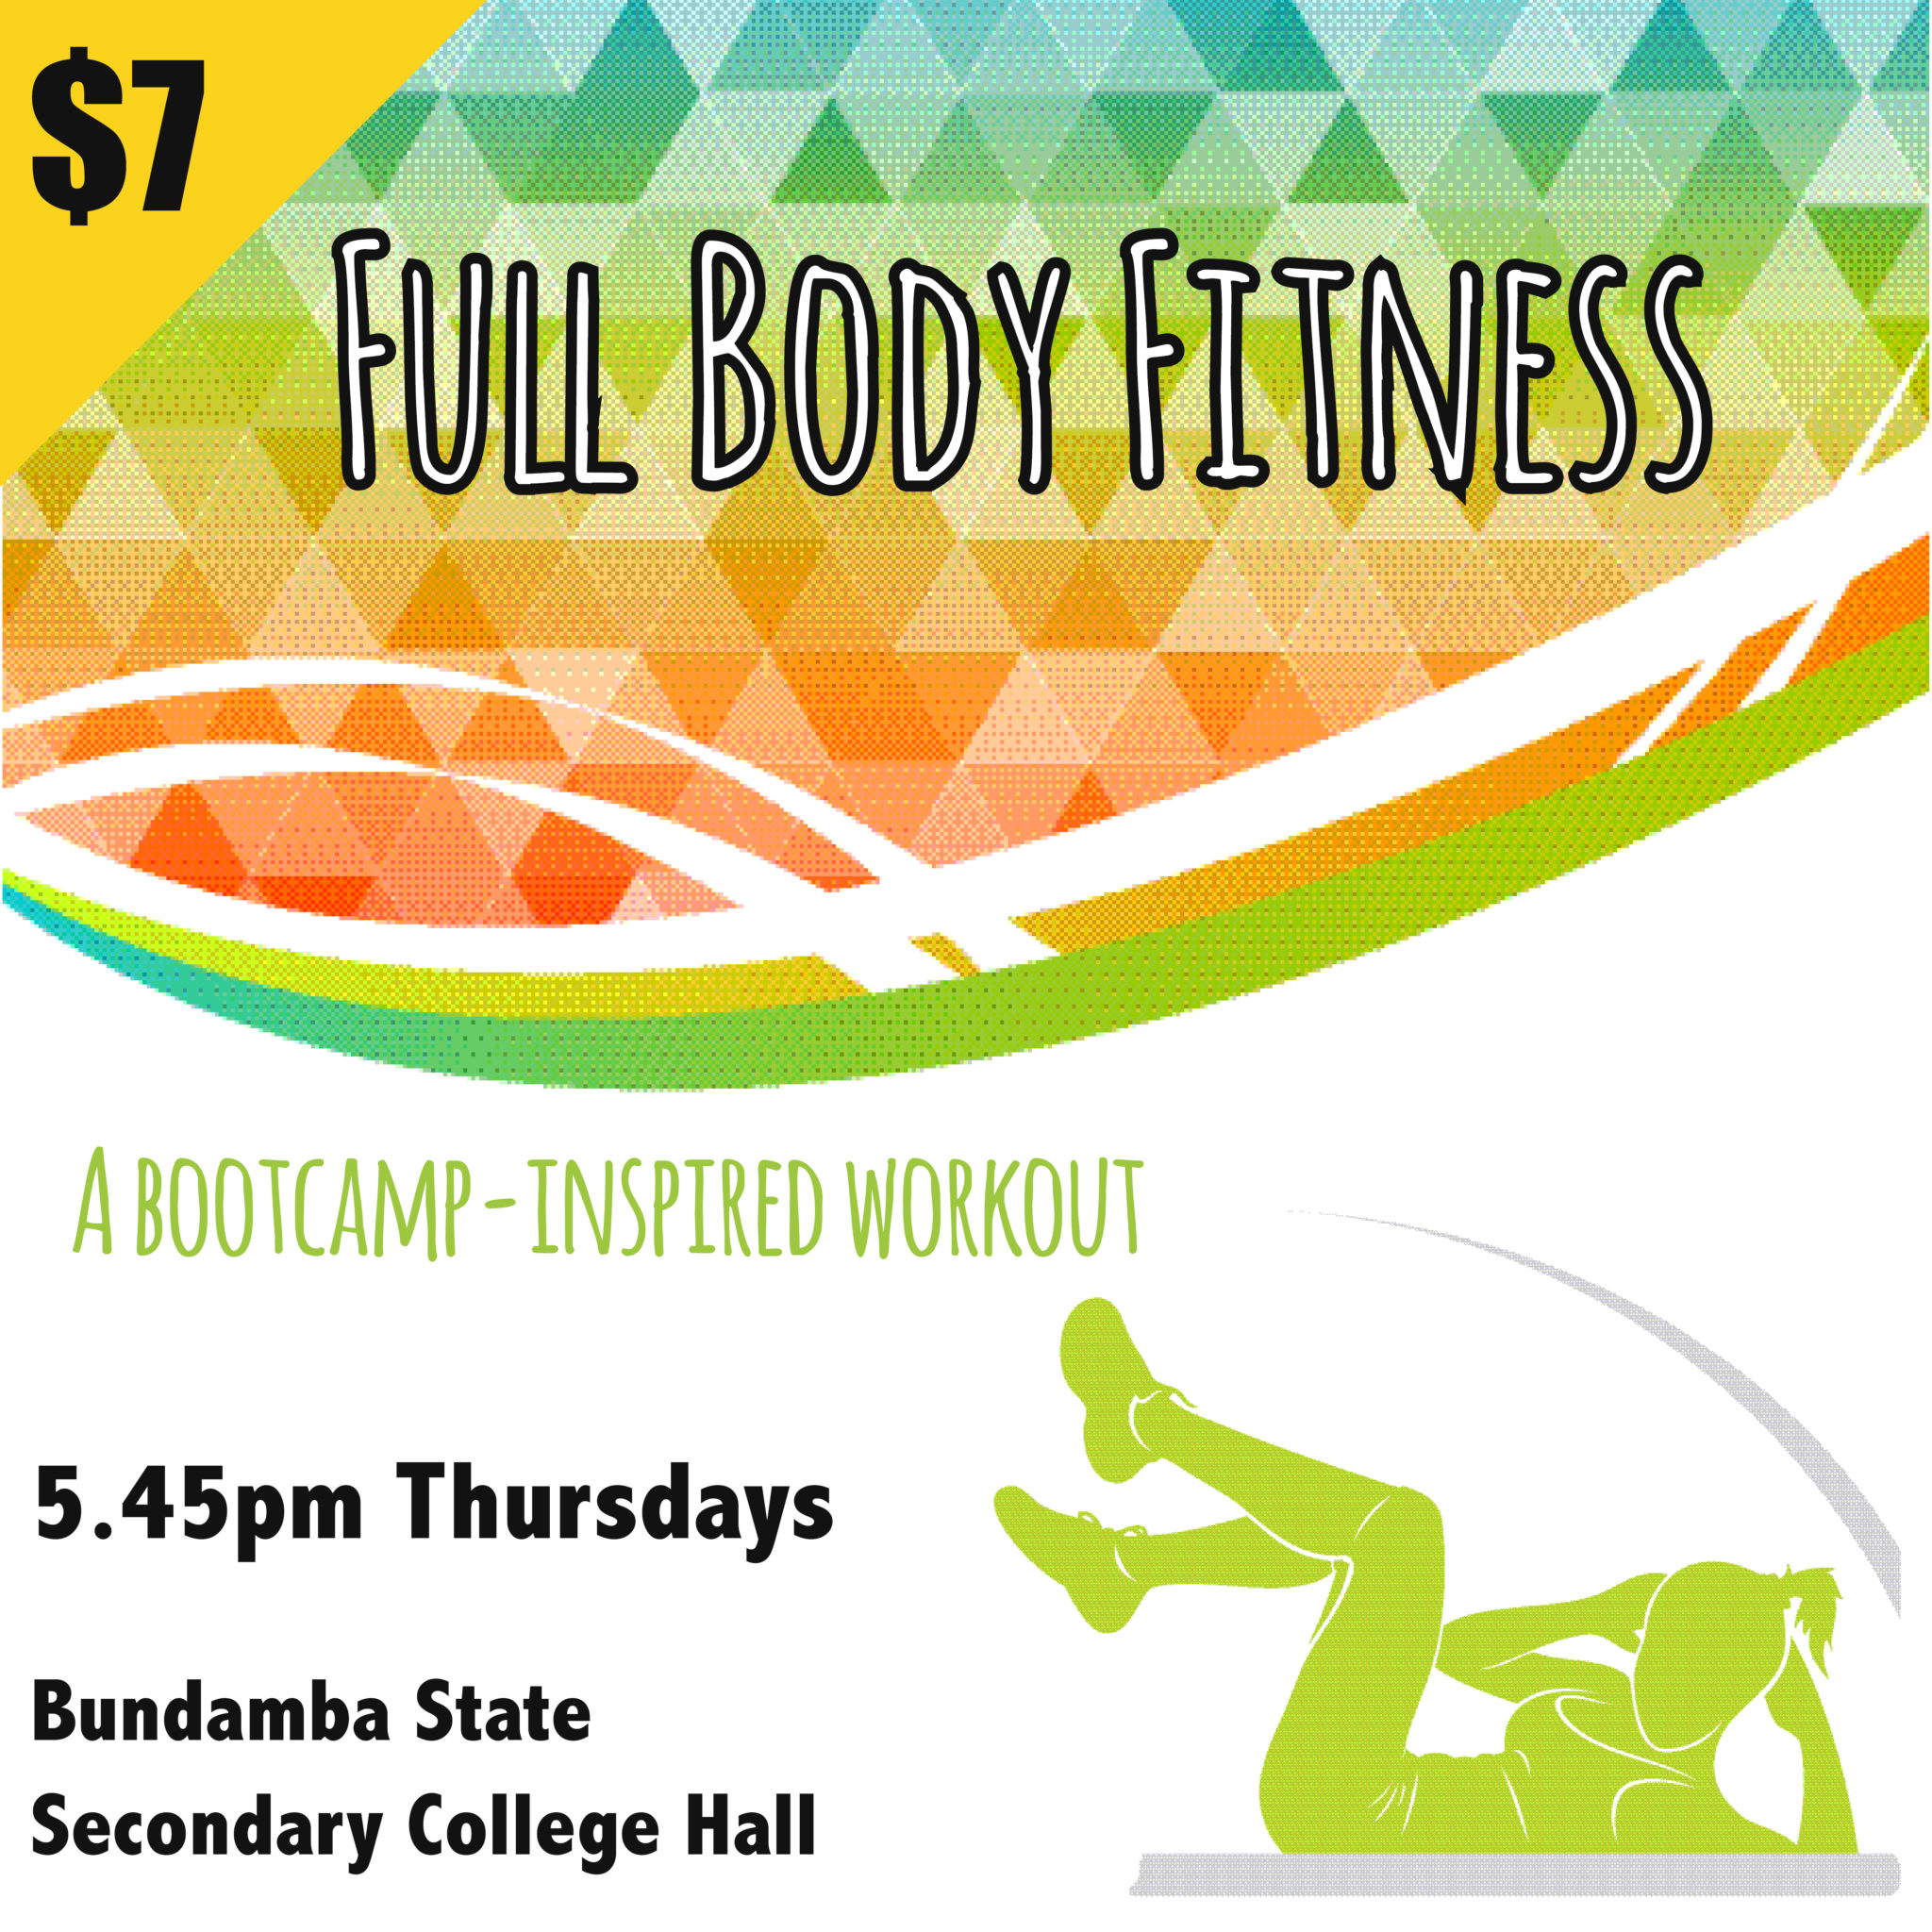 Full Body Fitness 5.45pm Thursdays at Bundamba State Secondary College